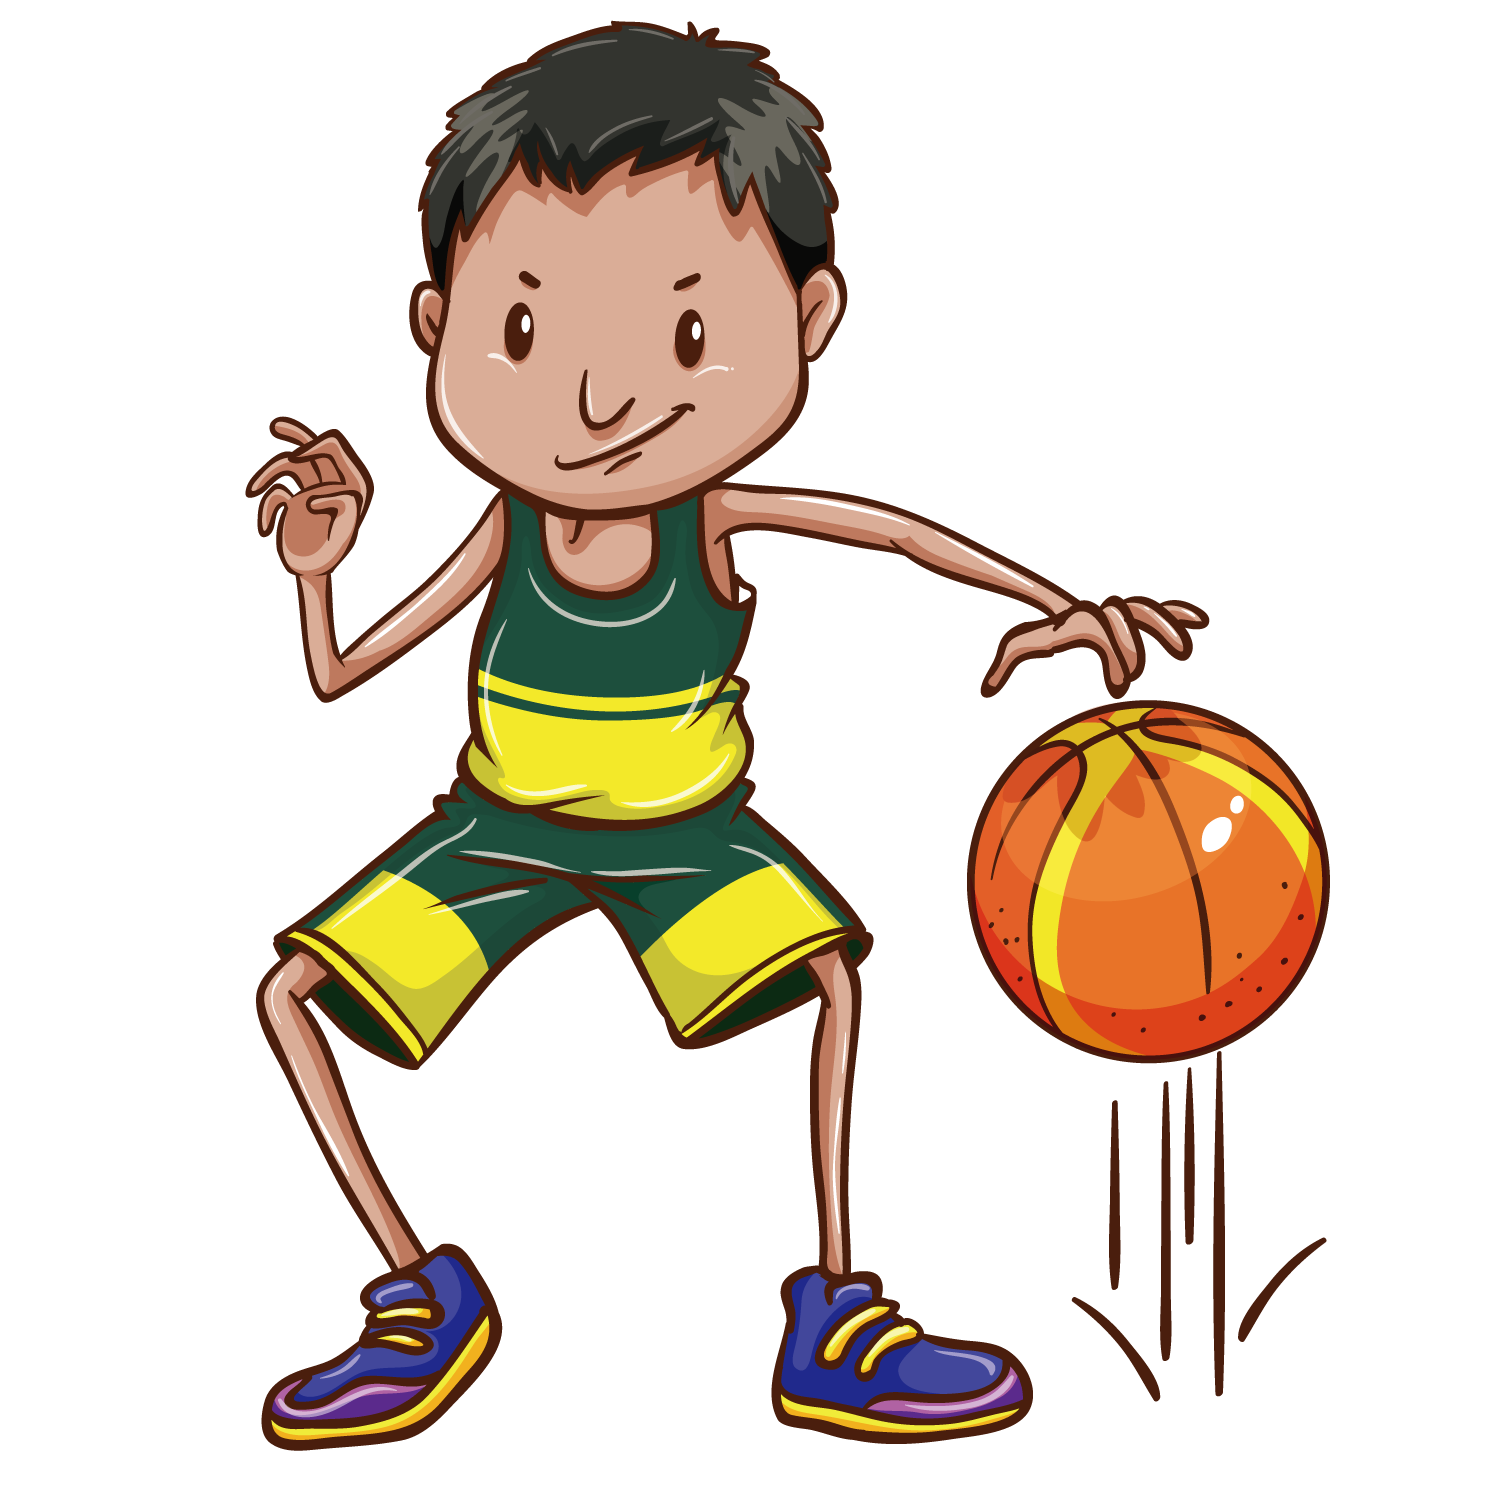 Cartoon boy with basketball clipart png freeuse download Basketball Drawing Clip art - Basketball boy 1500*1500 transprent ... png freeuse download